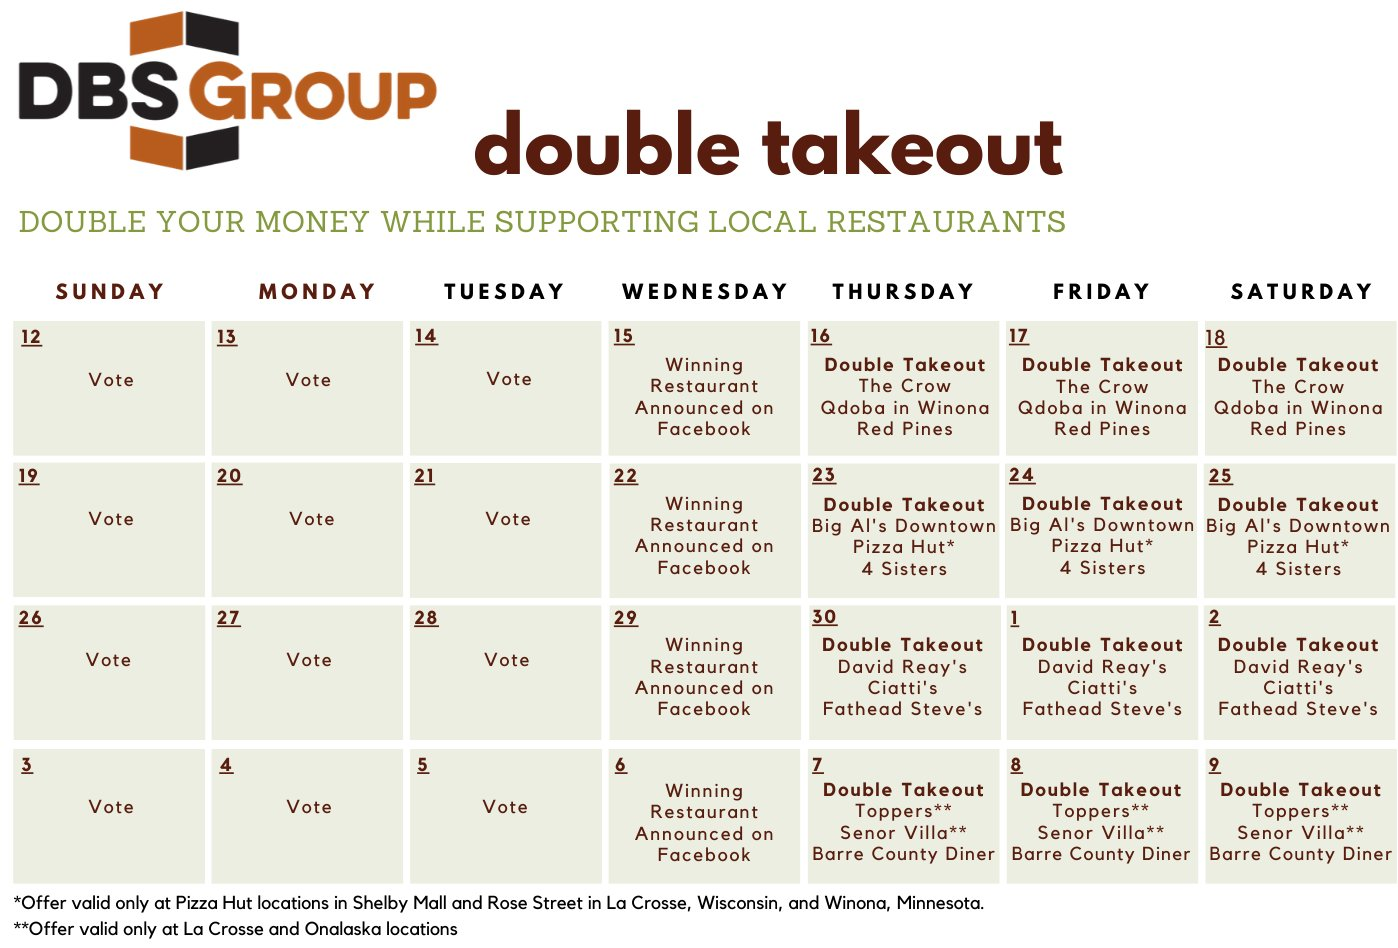 DBS Group Double Takeout